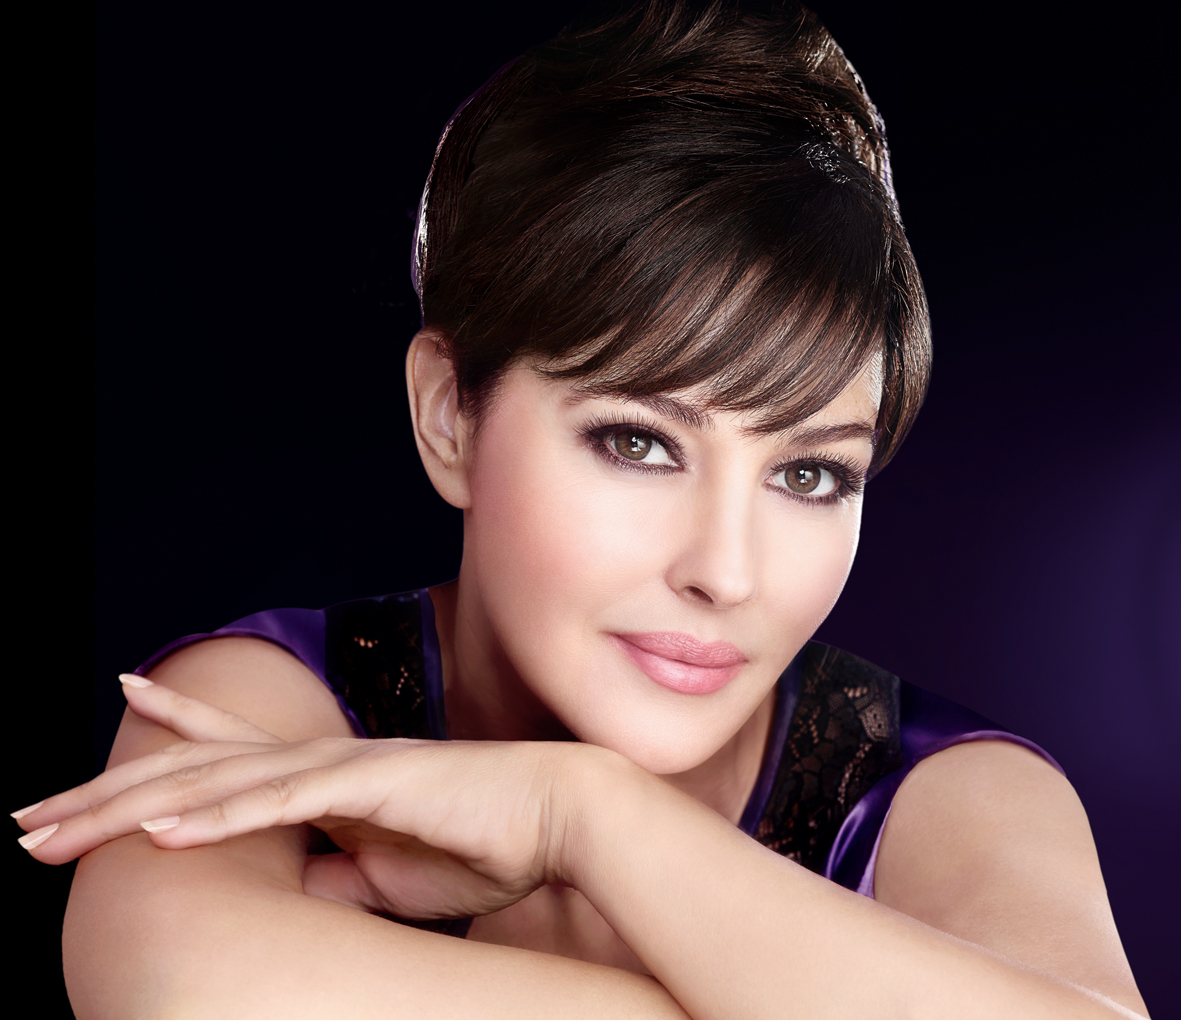 Monica Bellucci photo 1135 of 1719 pics, wallpaper - photo ... Monica Bellucci